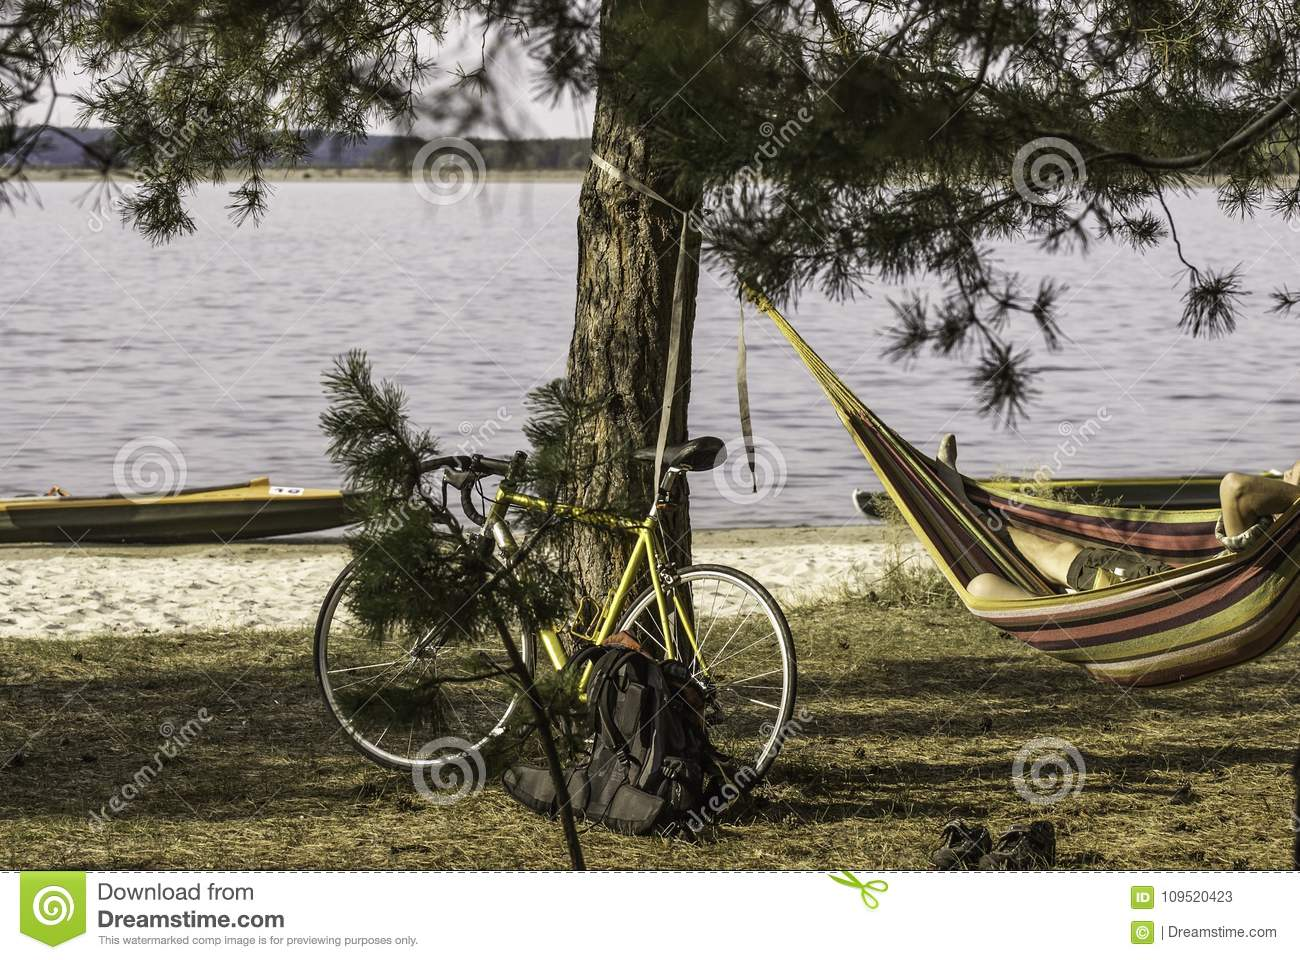 A bike near the pine on the river bank, a cyclist resting in a hammock.